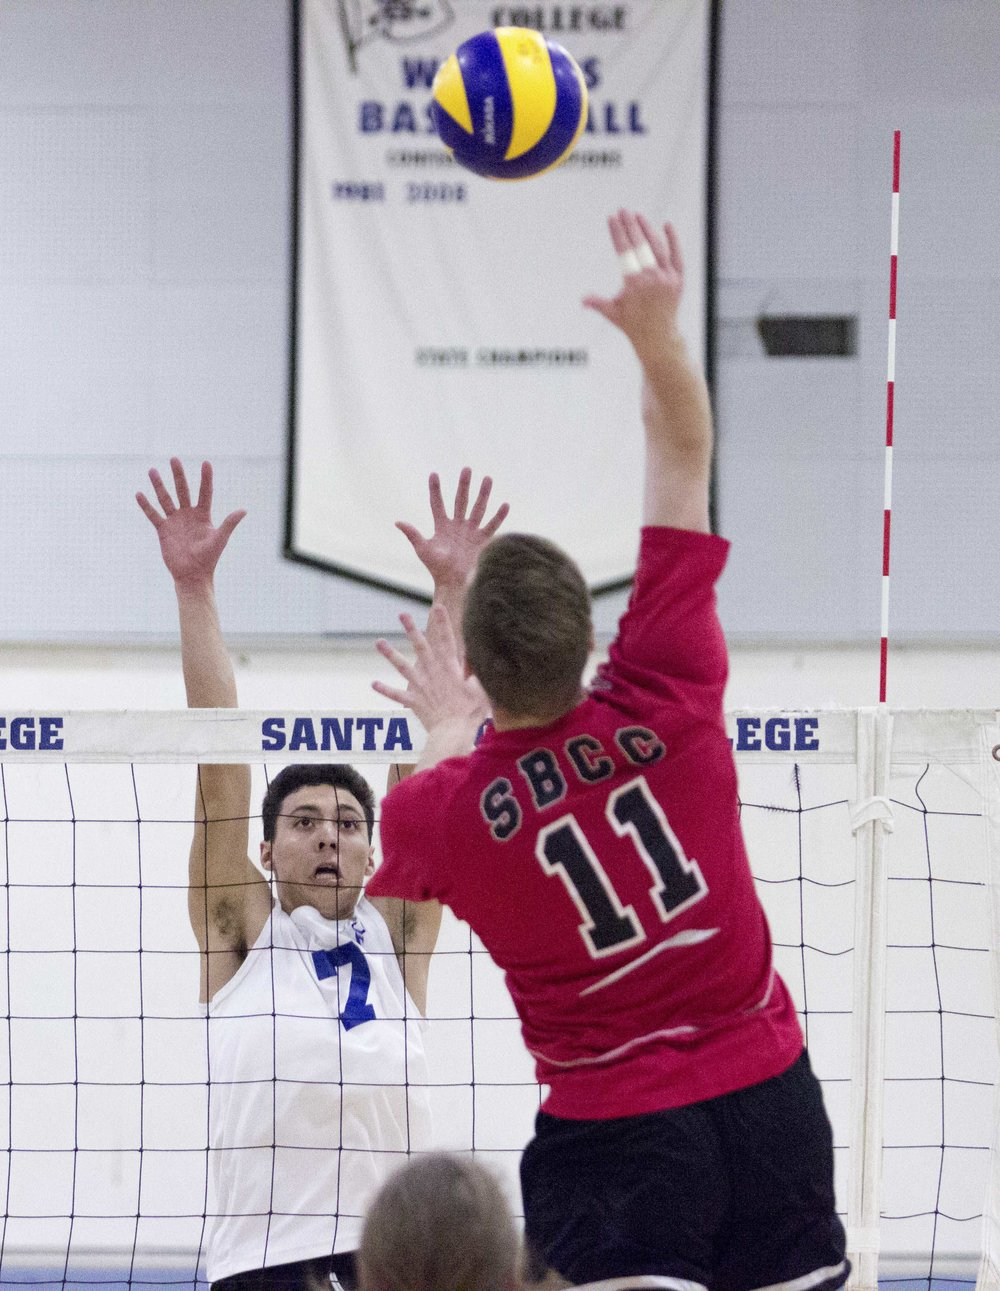 Santa Barbara City College Vaqueros sophomore right side hitter Sean Reynaert (11, right) spikes the ball down as Santa Monica College Corsairs freshman outside hitter Max Ball (7, left) attempts a block on the way to a 3-0 victory for the Corsairs on March 15, 2017 in the Santa Monica College Gymnasium at Santa Monica College in Santa Monica California (Photo By: Zane Meyer)